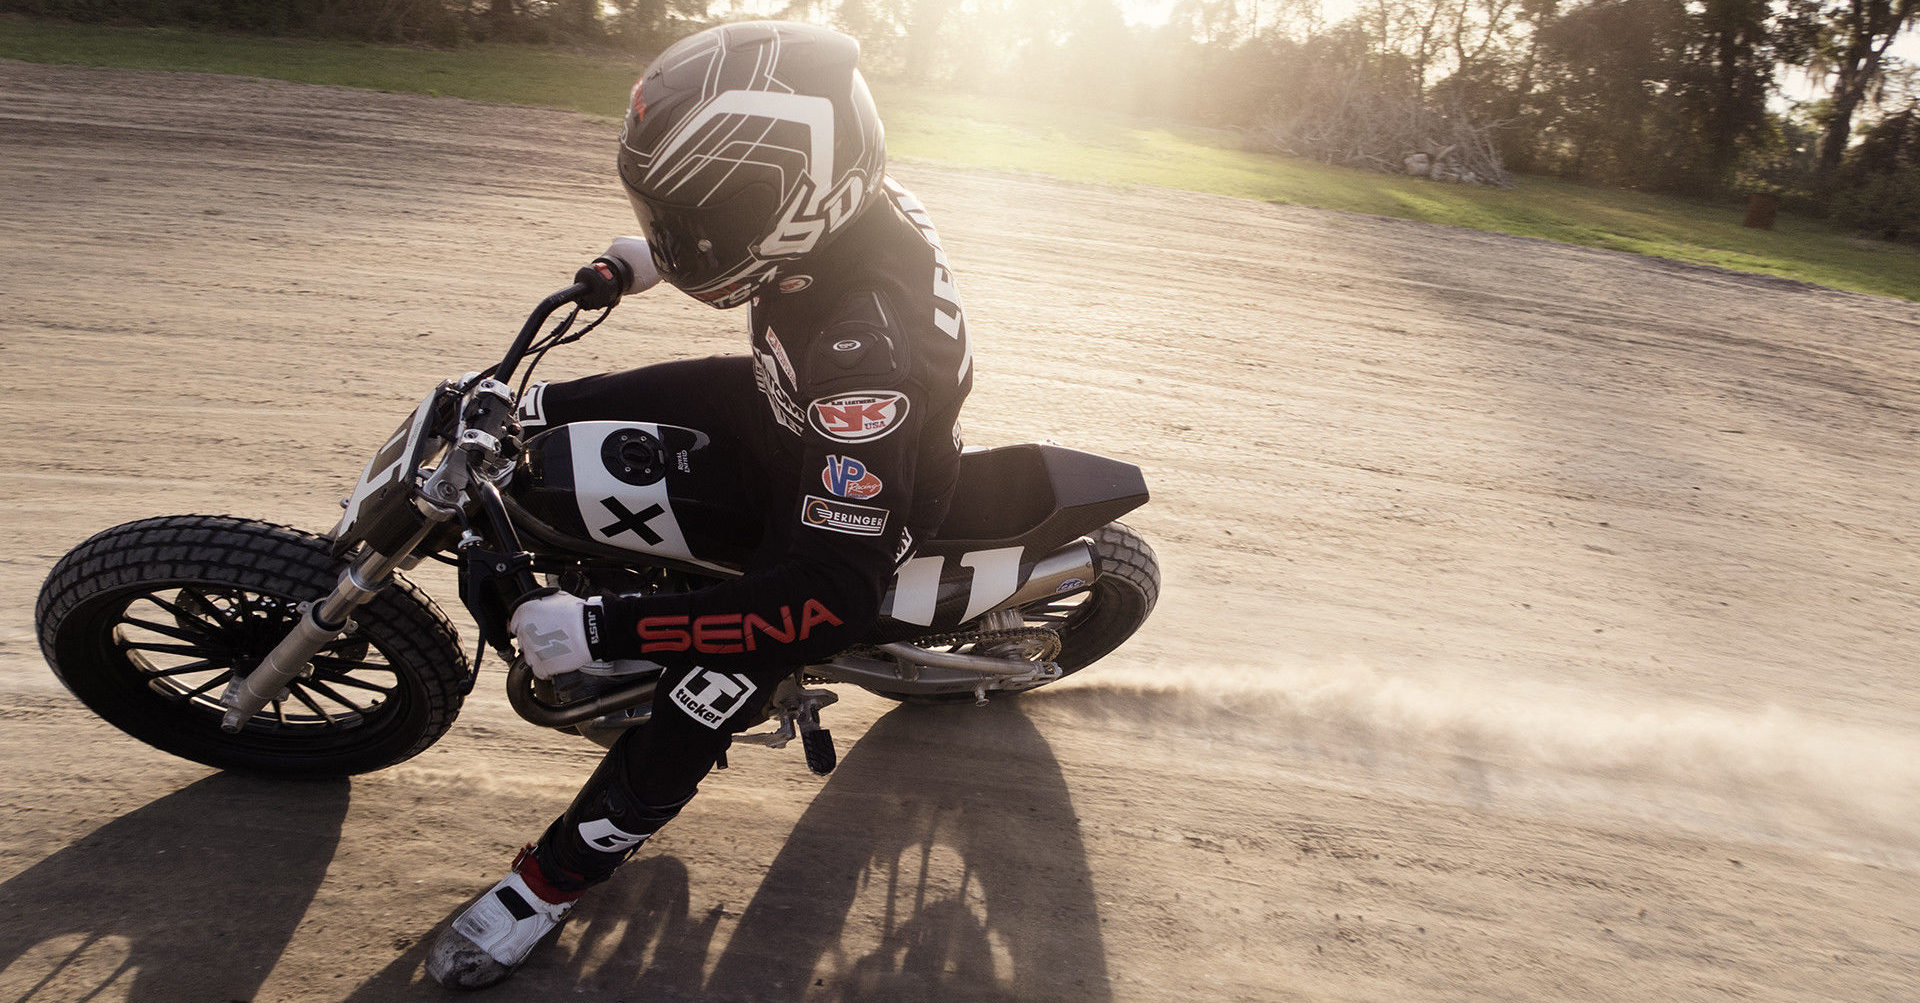 Johnny Lewis in action on his Royal Enfield FT flat track racebike. Photo courtesy Royal Enfield North America.